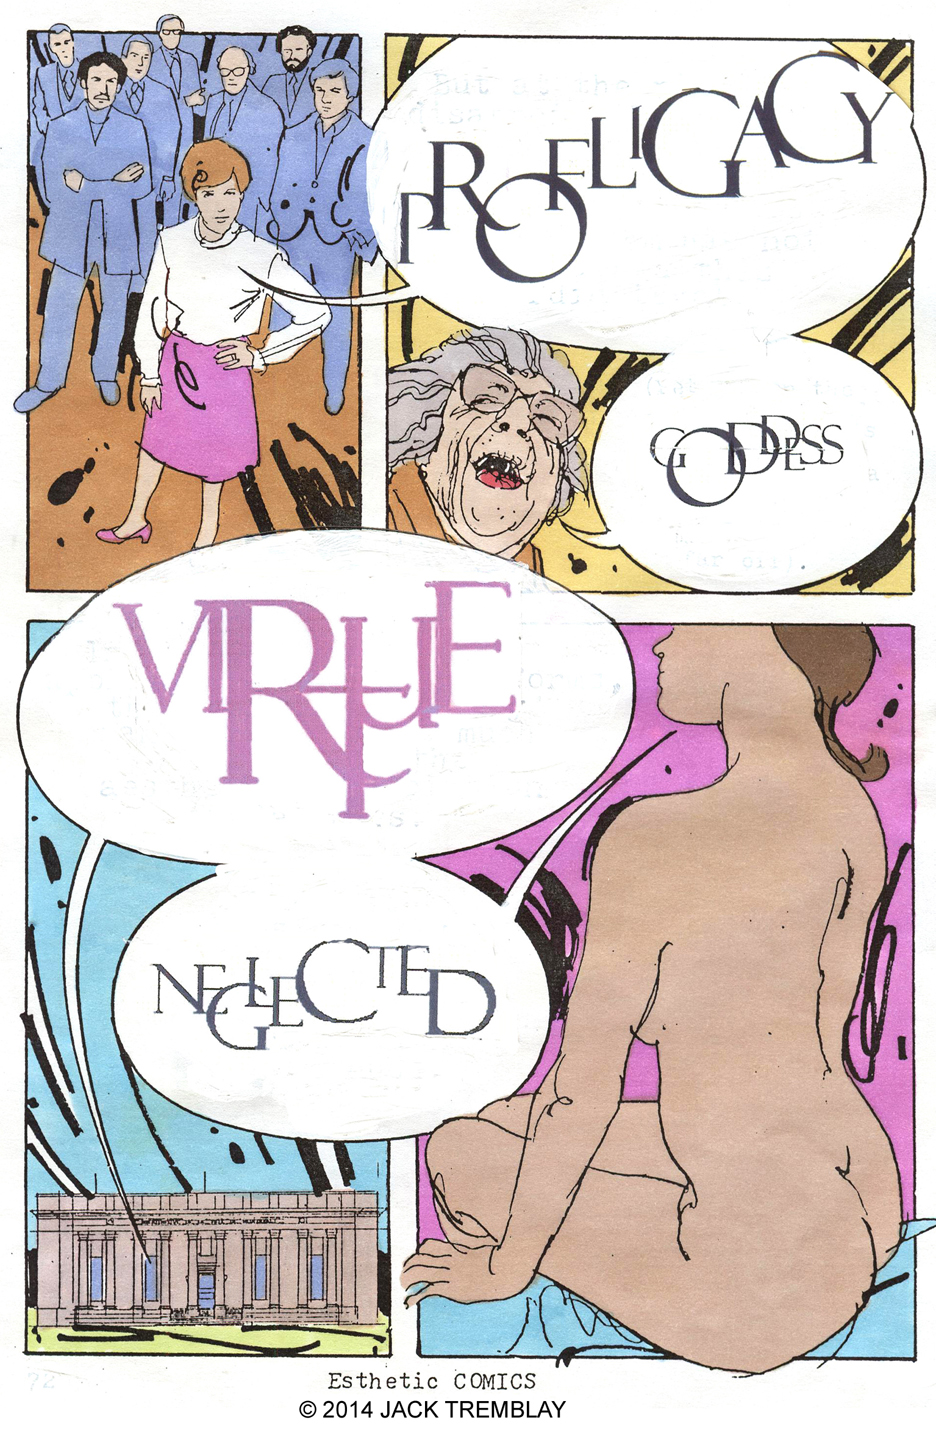 tremblay_minicomic_sample_PROFLIGACY